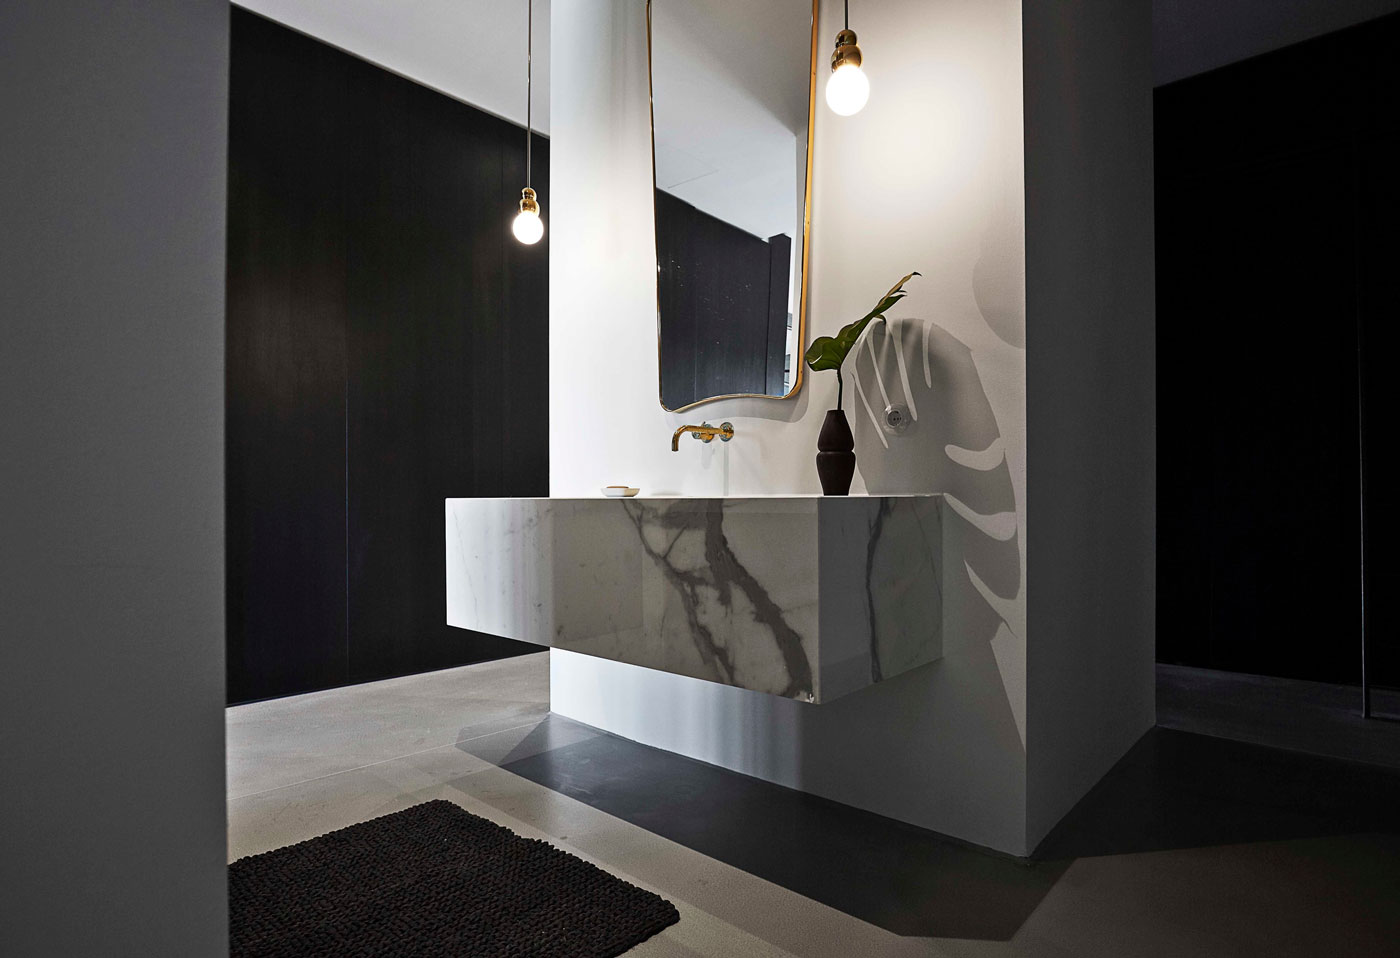 Marble sink, gold mirror, faucet